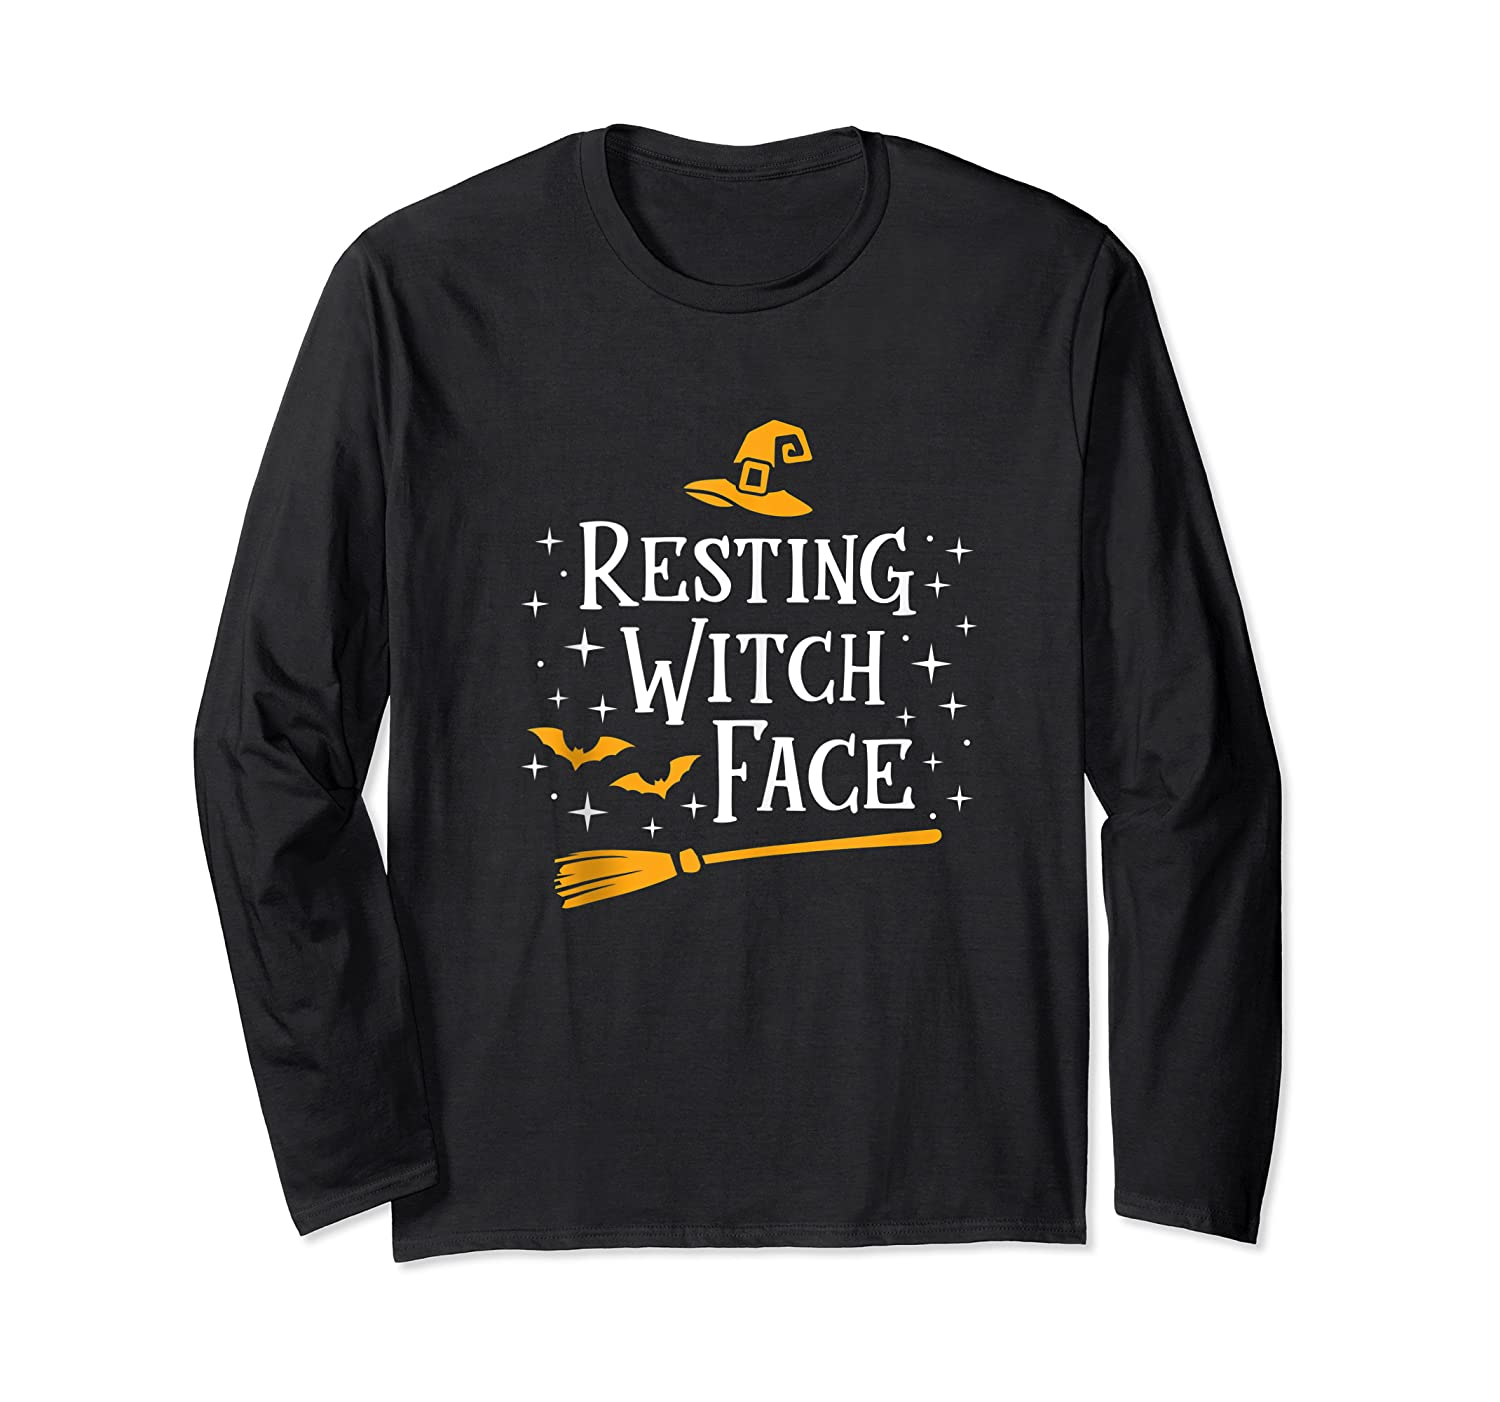 Resting Witch Face Shirt Broomstick Funny Spooky Party Tank Top Long Sleeve T-shirt